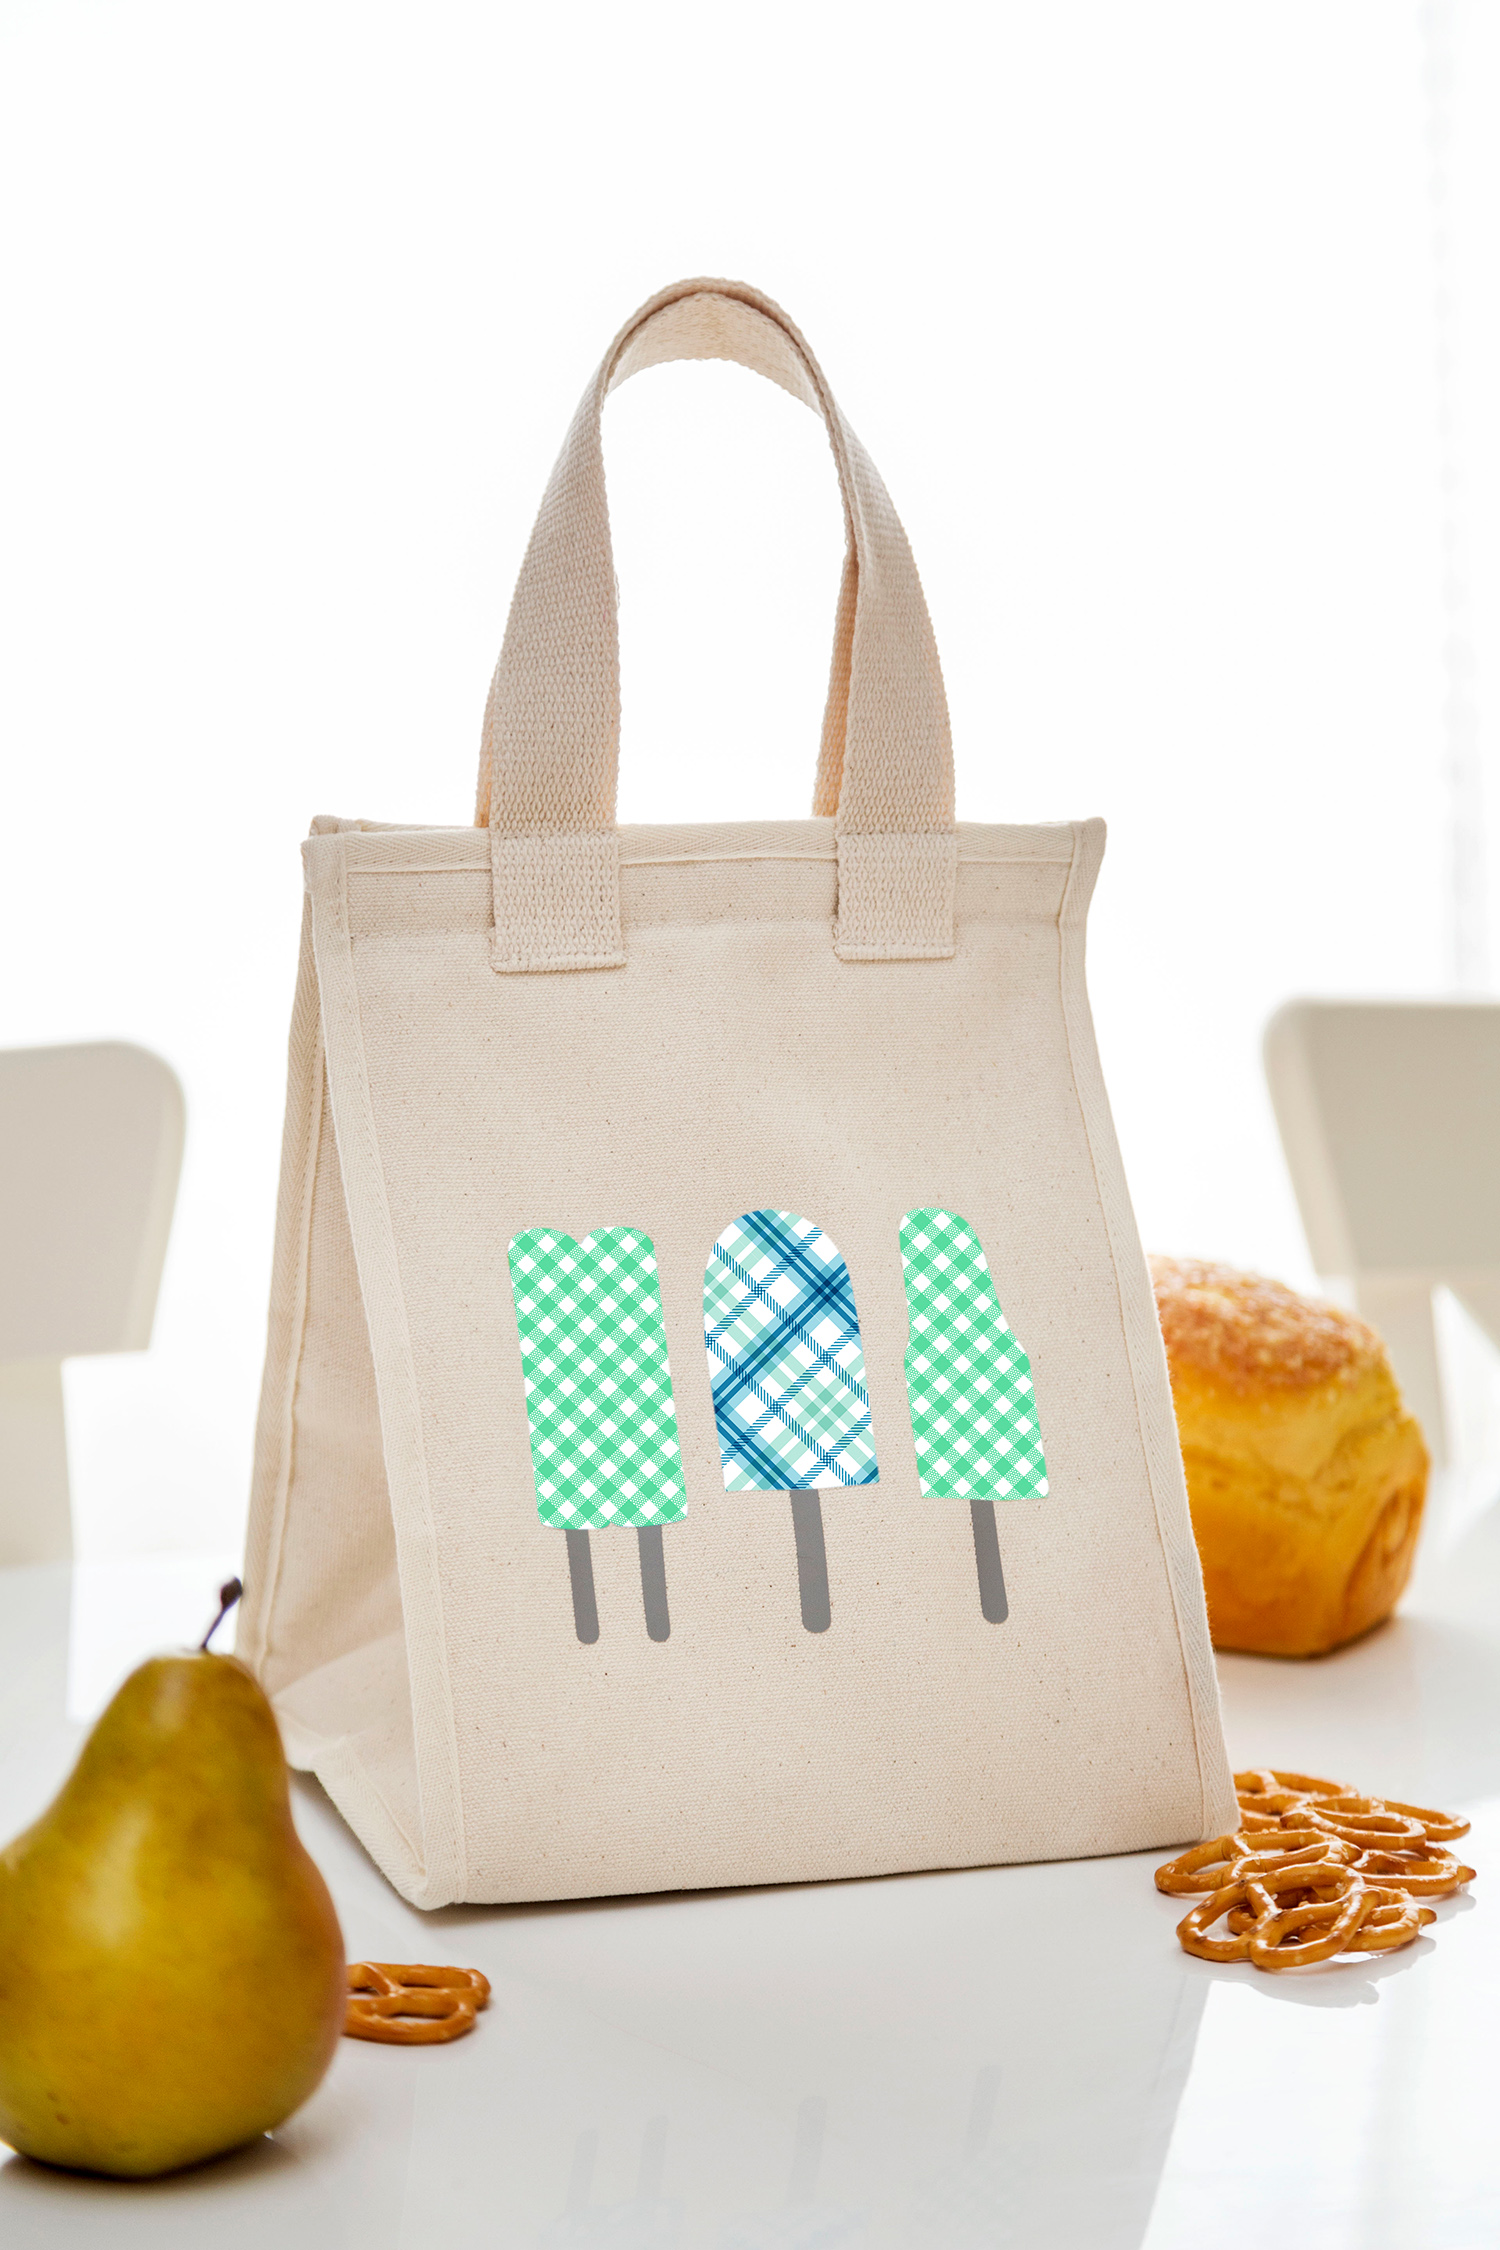 cricut popsicle personalized lunch bag